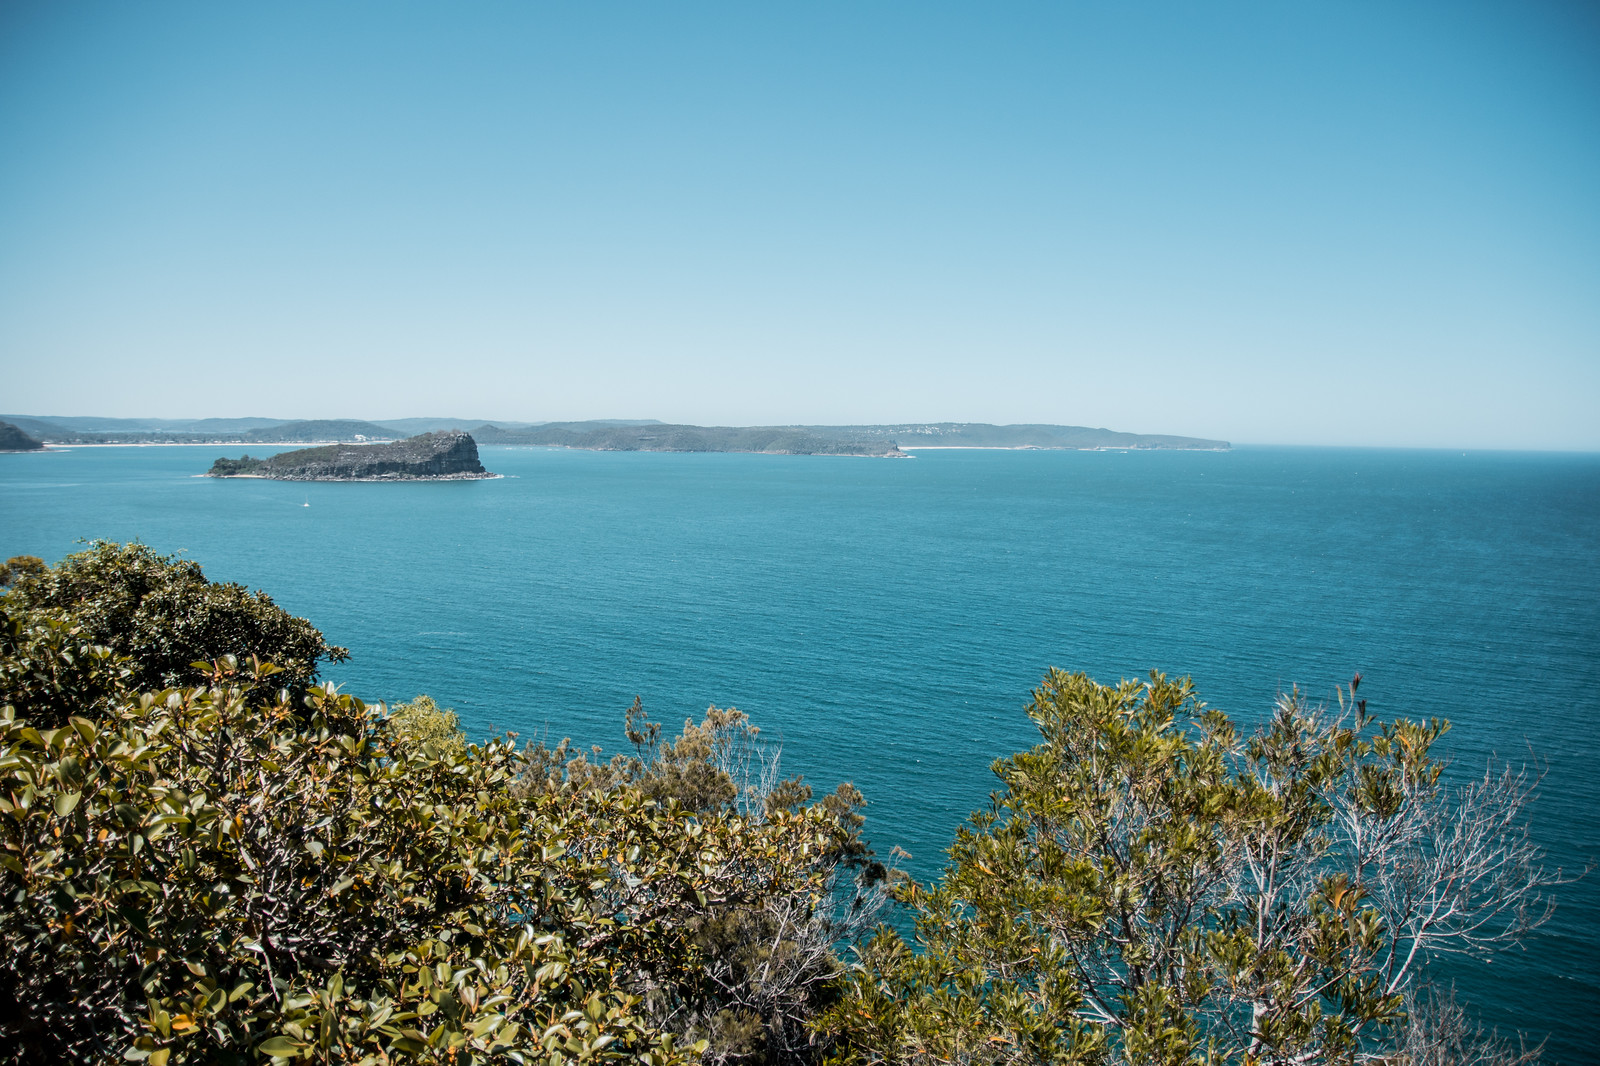 Learning about the iconic Westhead lookout from a different perspective with Stuart McMinn